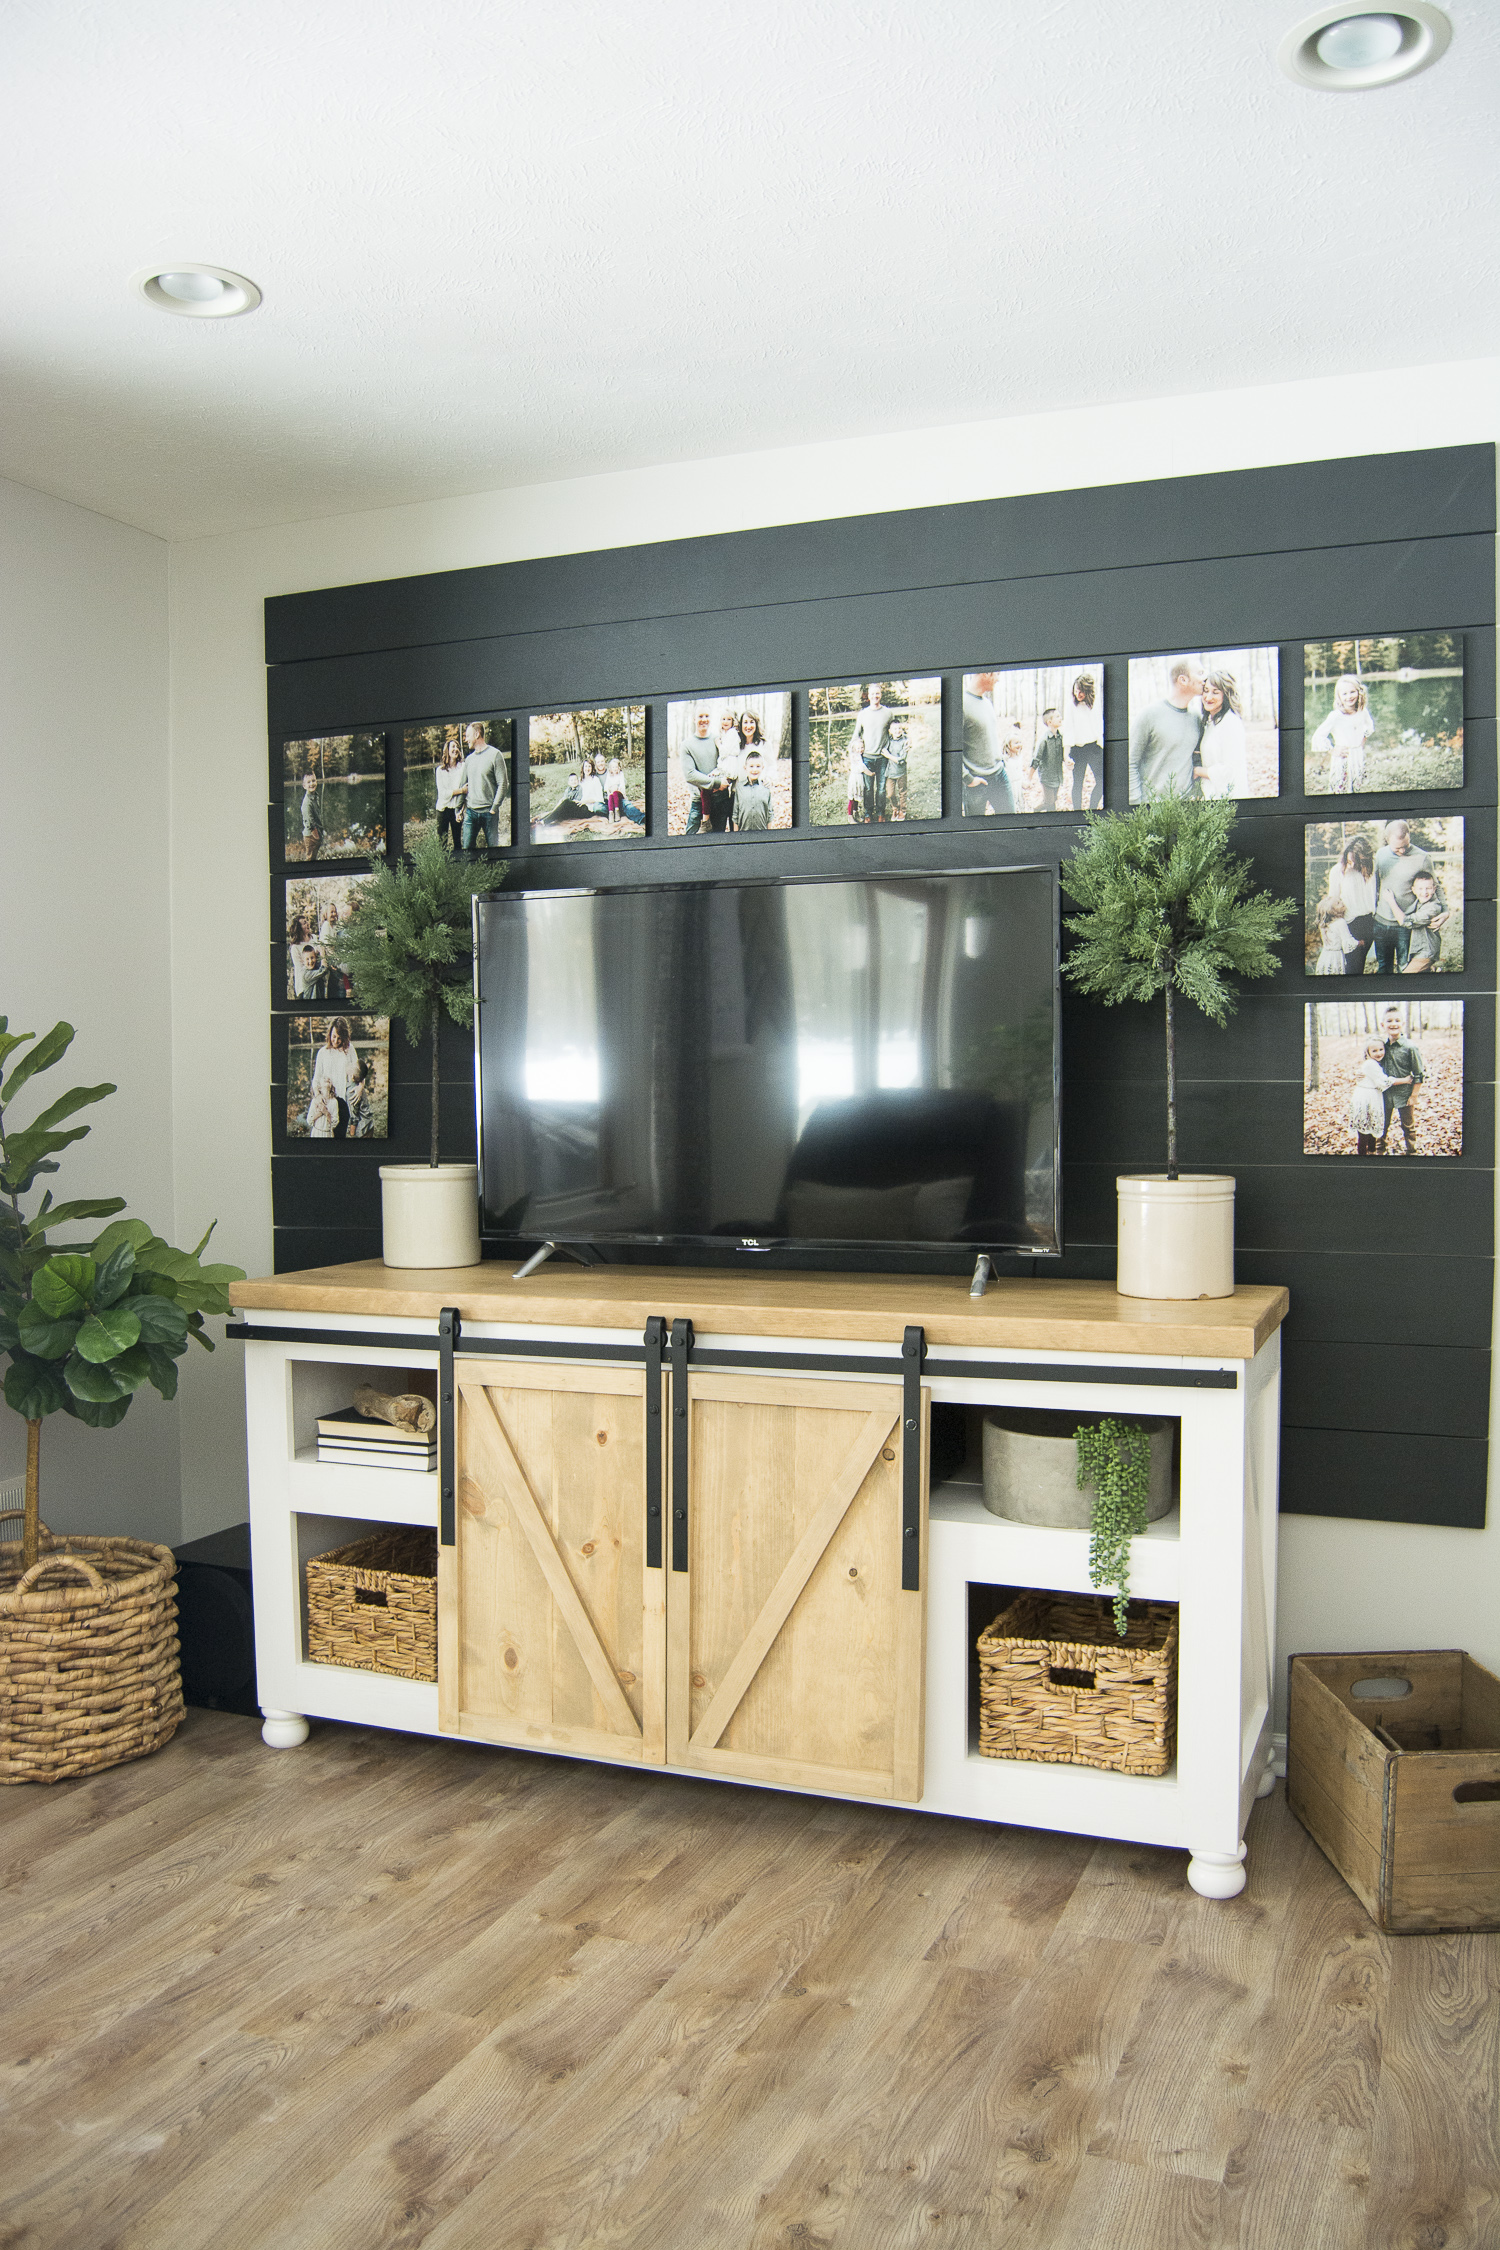 Black shiplap disguises a tv kellyelko.com #shiplap #blackshiplap #gallerywall #farmhousedecor